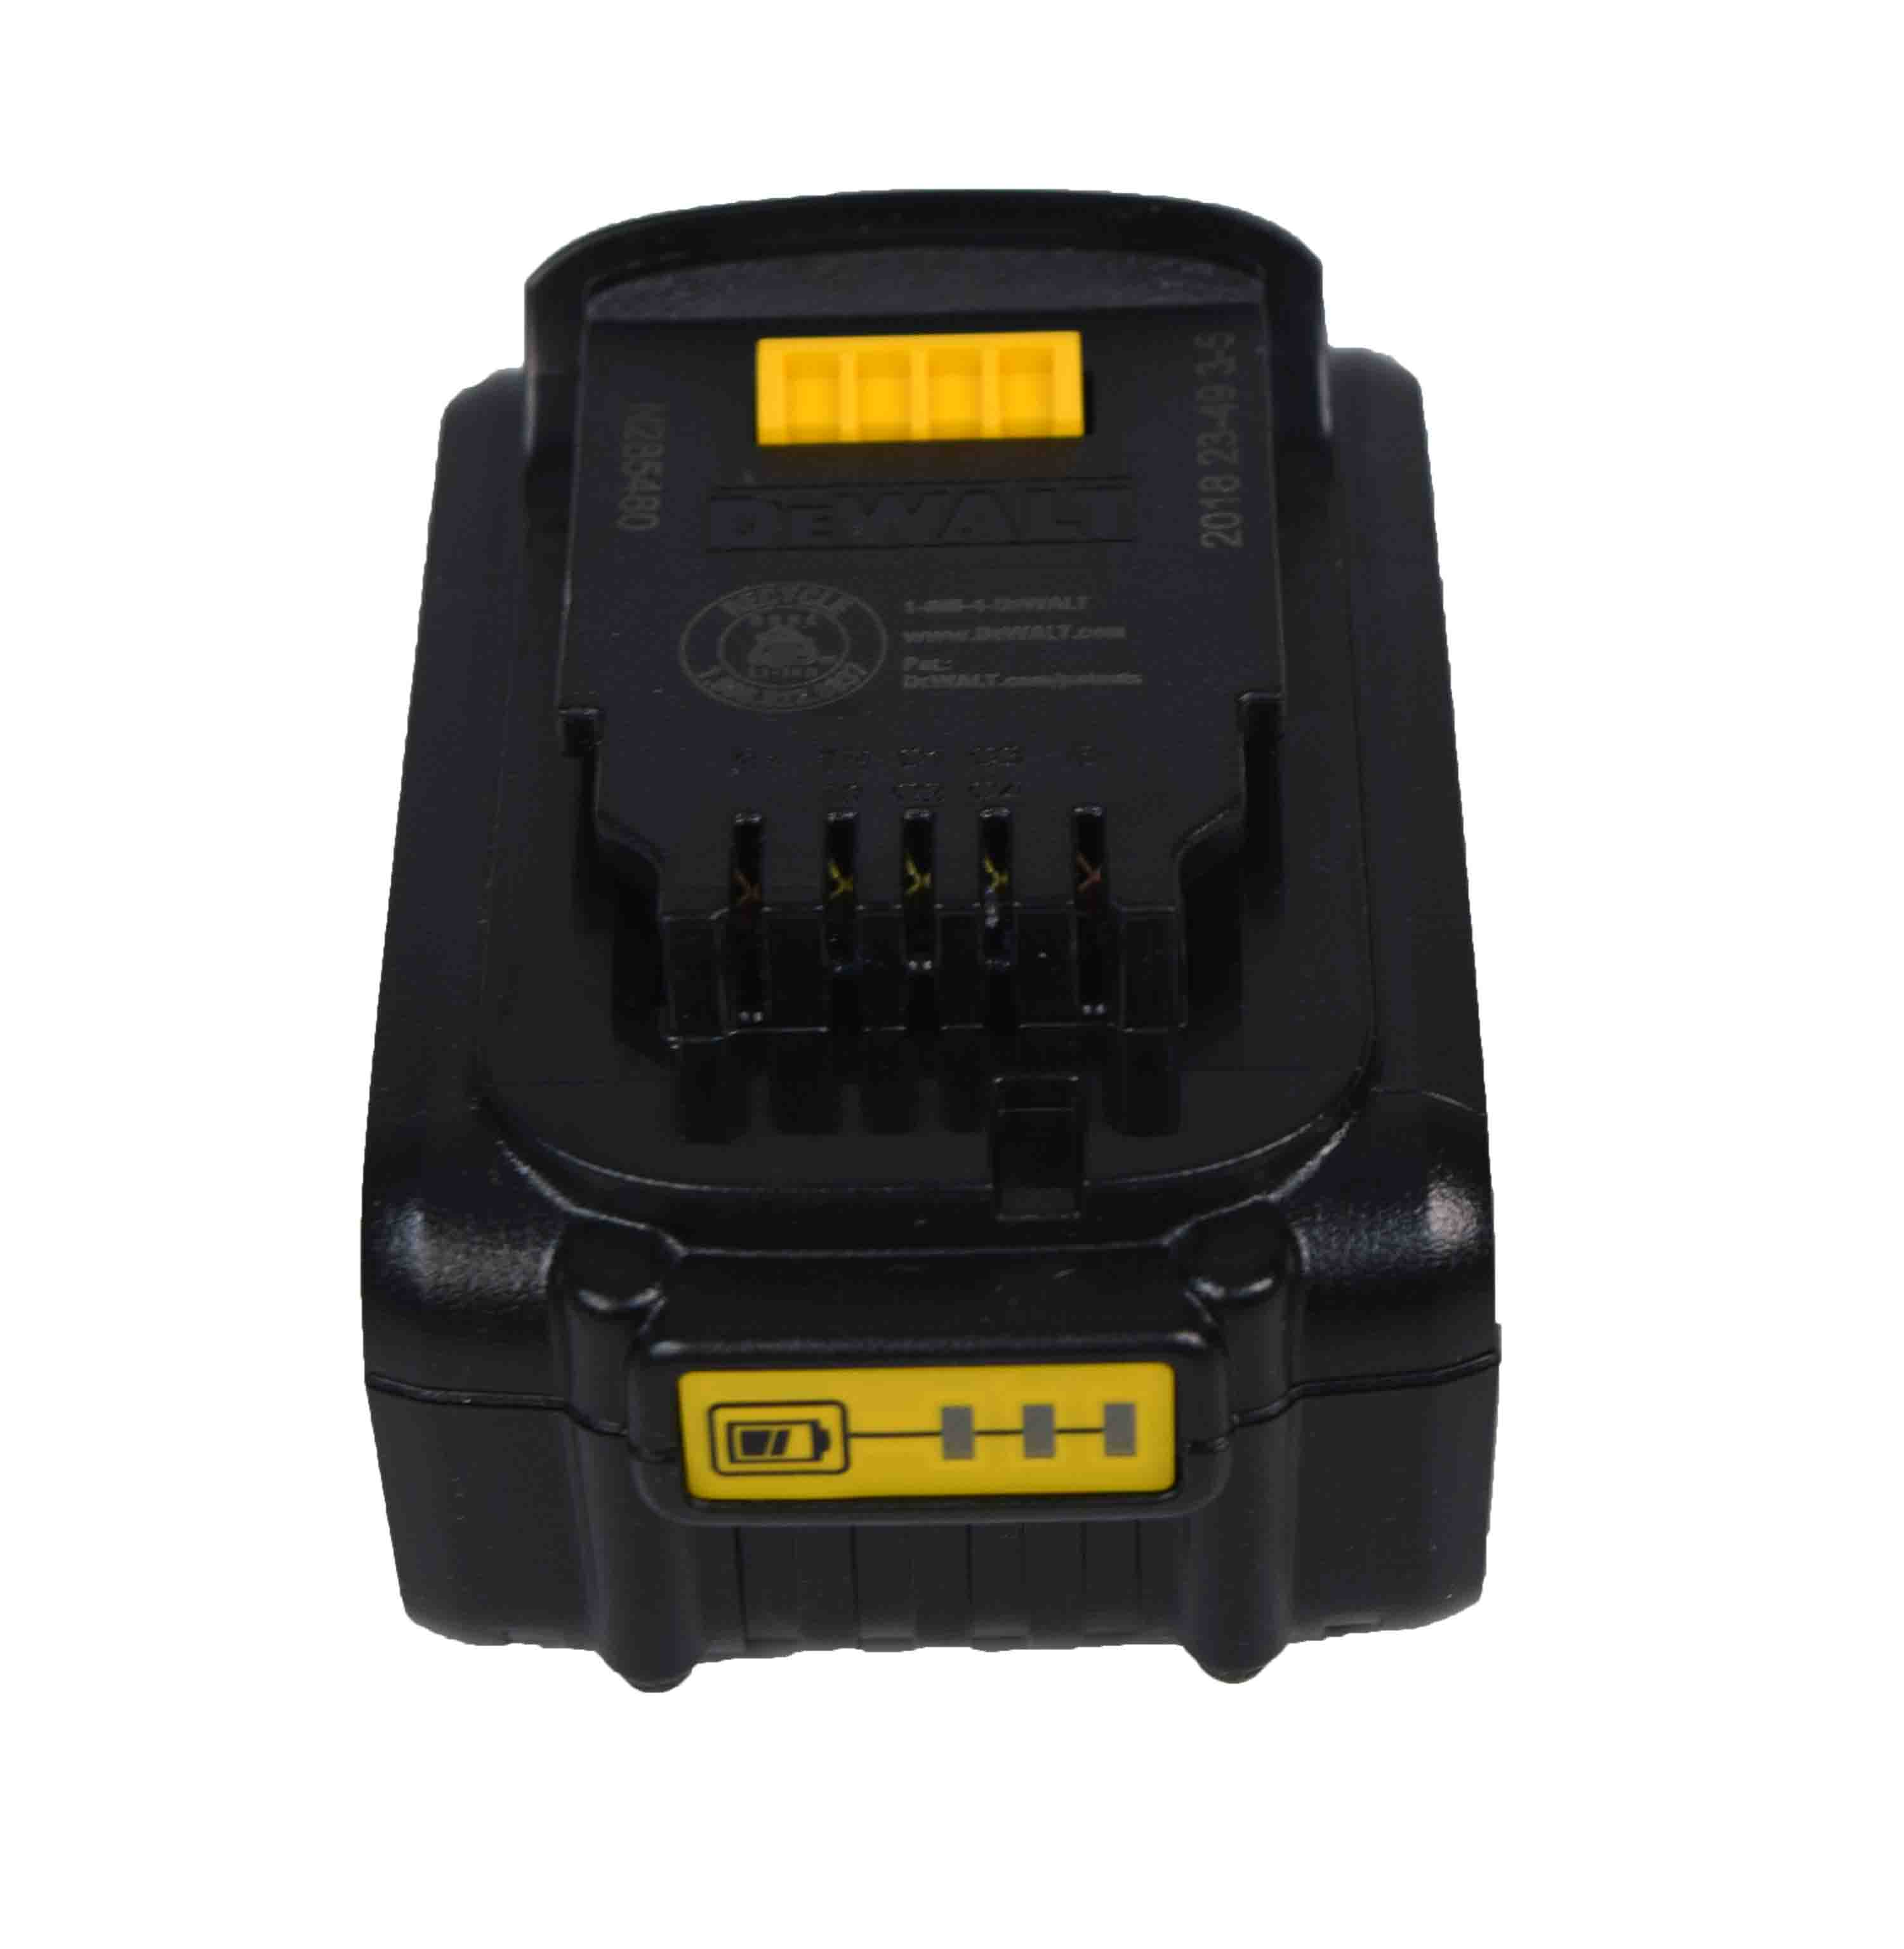 Dewalt-Dcb200-20-Volt-3-Ah-Lithium-Ion-Battery-Single-Pack-image-8